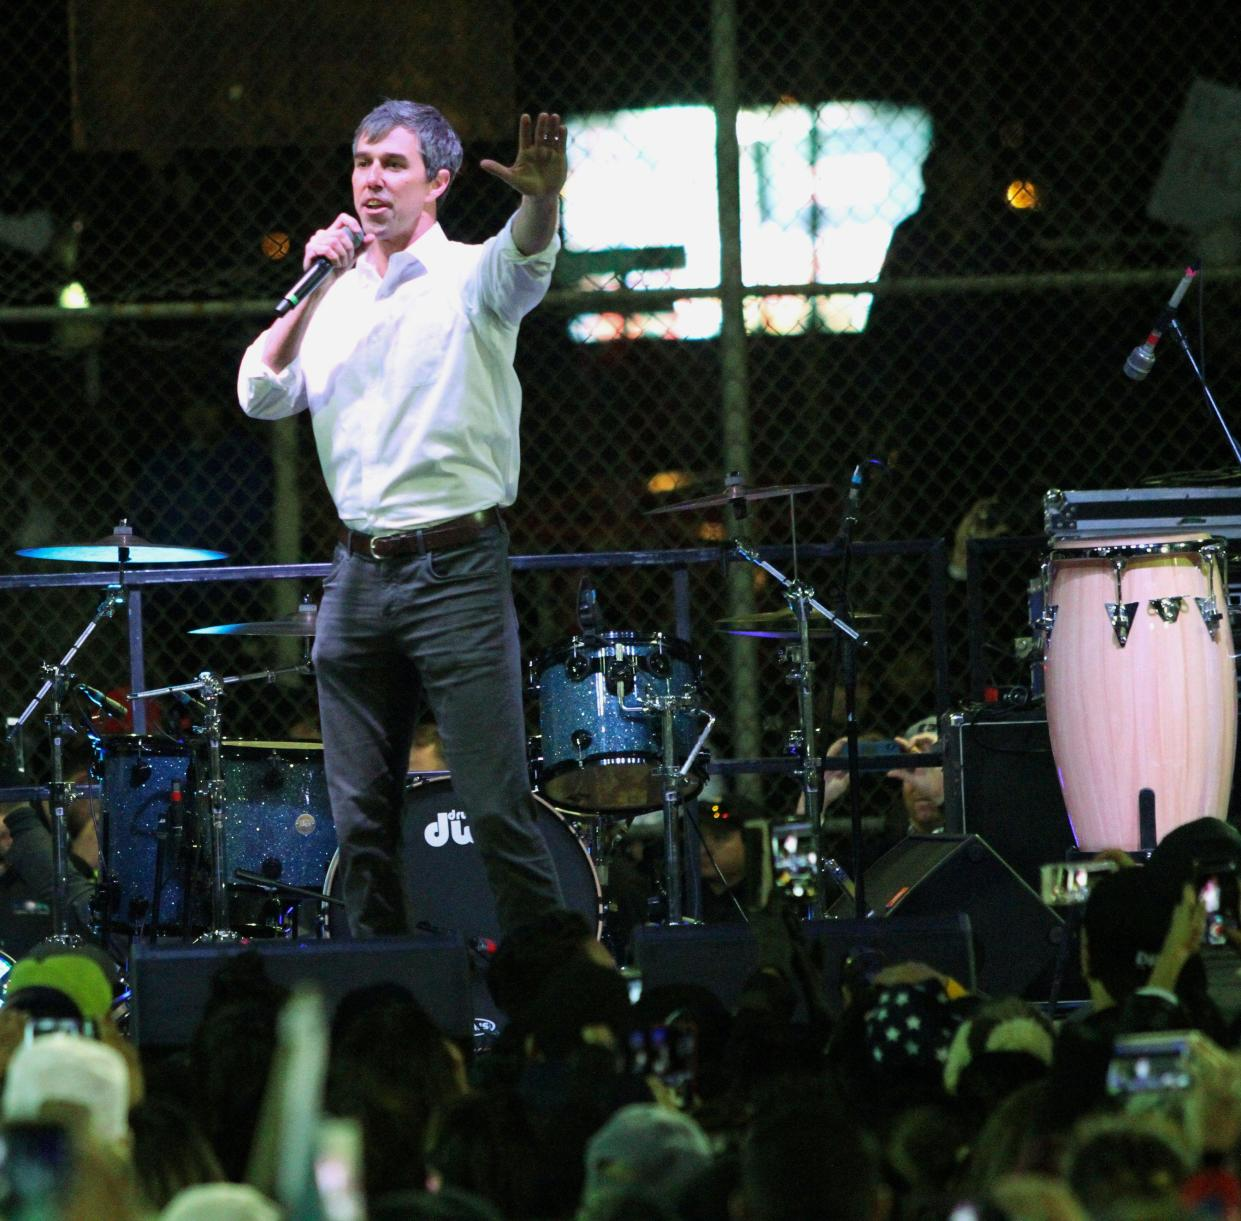 Former U.S. Rep. Beto O'Rourke speaks to a crowd inside a ballpark across the street from the president's rally. (Photo: Rudy Gutierrez/AP)